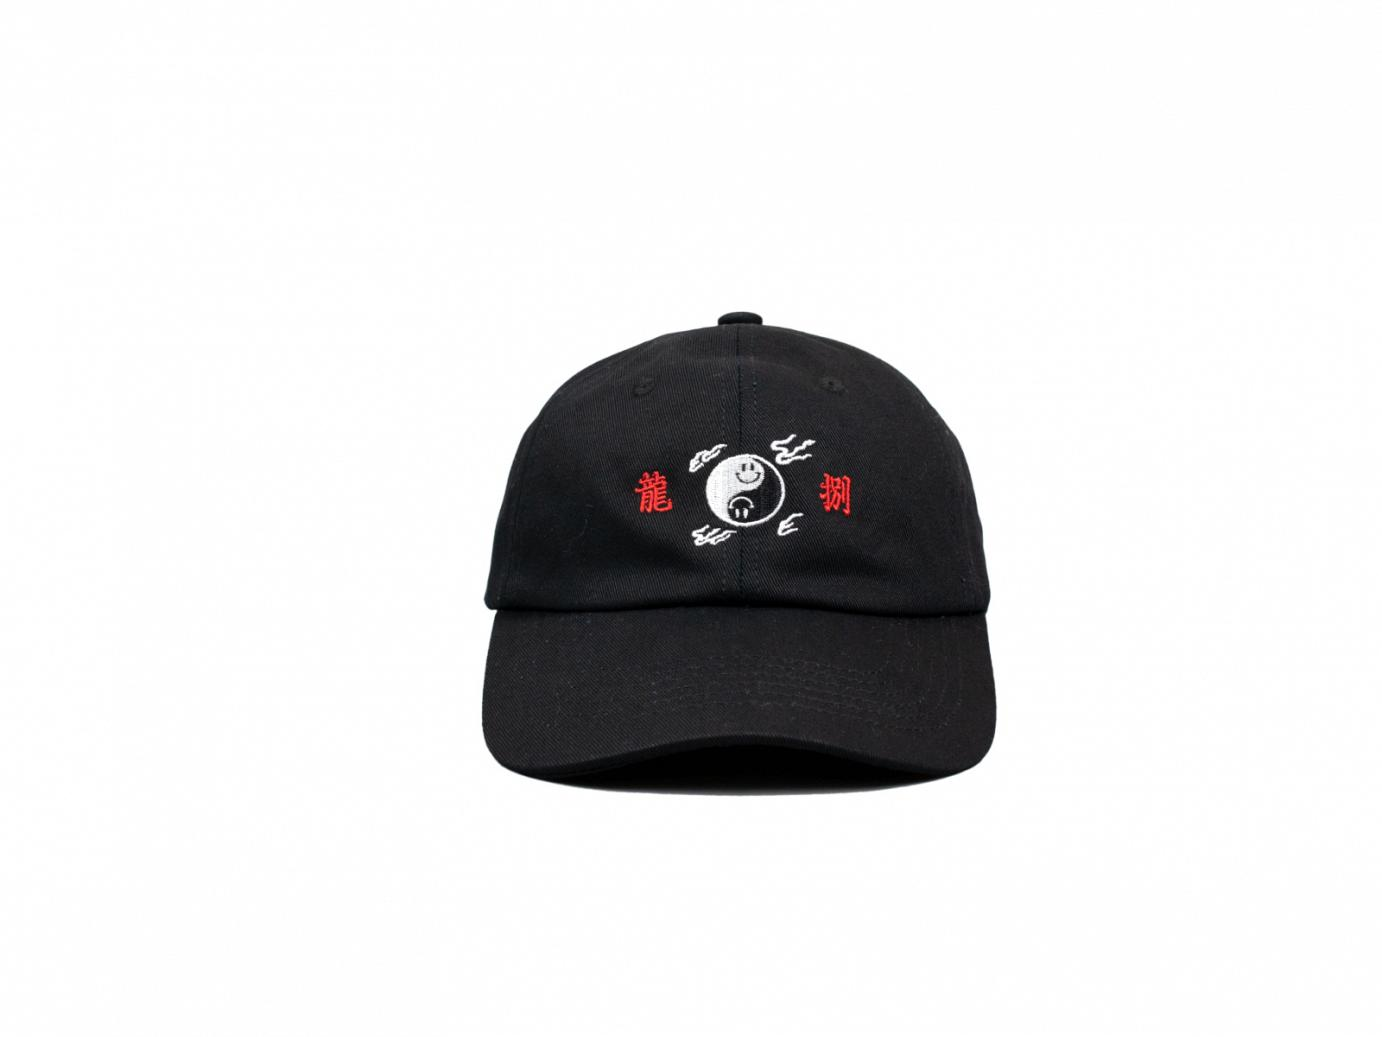 18 uppercut x dragonmade8 dad hat 2